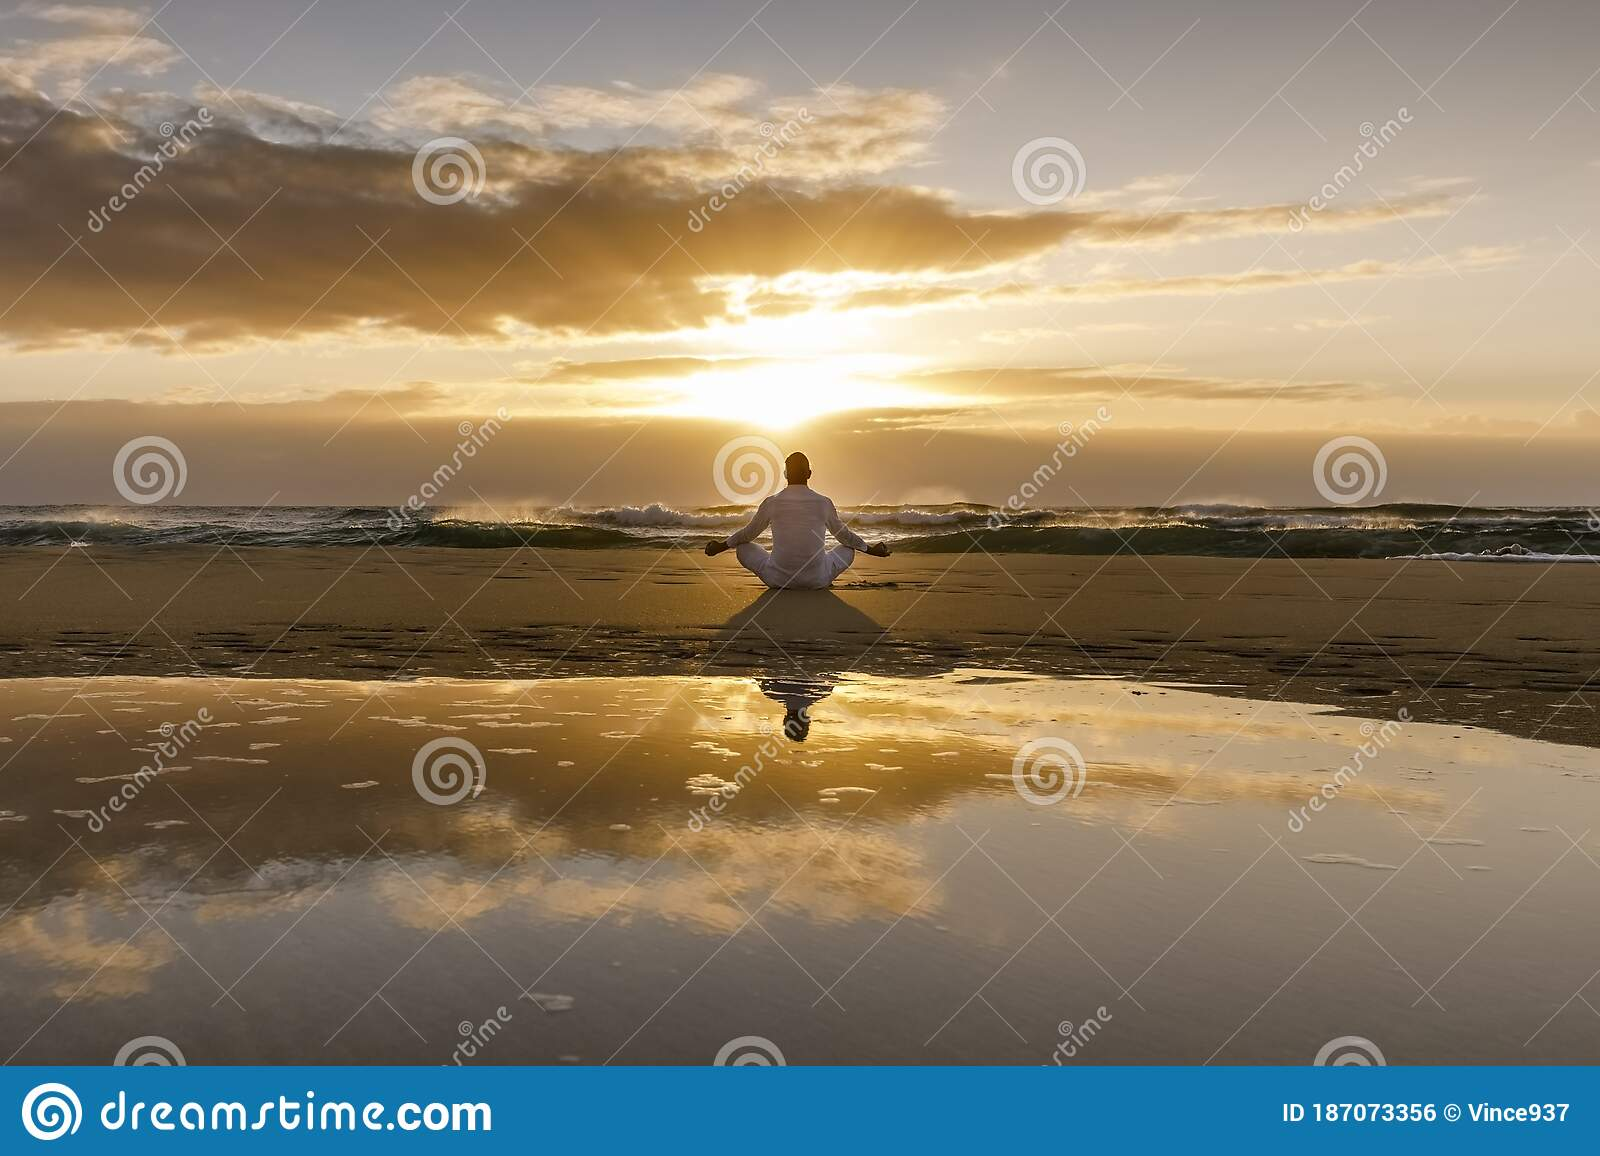 Yoga Meditation Silhouette Lotus Sunrise Beach Water Reflection Of Man In Yoga Pose Mindfulness Wellbeing Concept Stock Photo Image Of Lotus Serenity 187073356